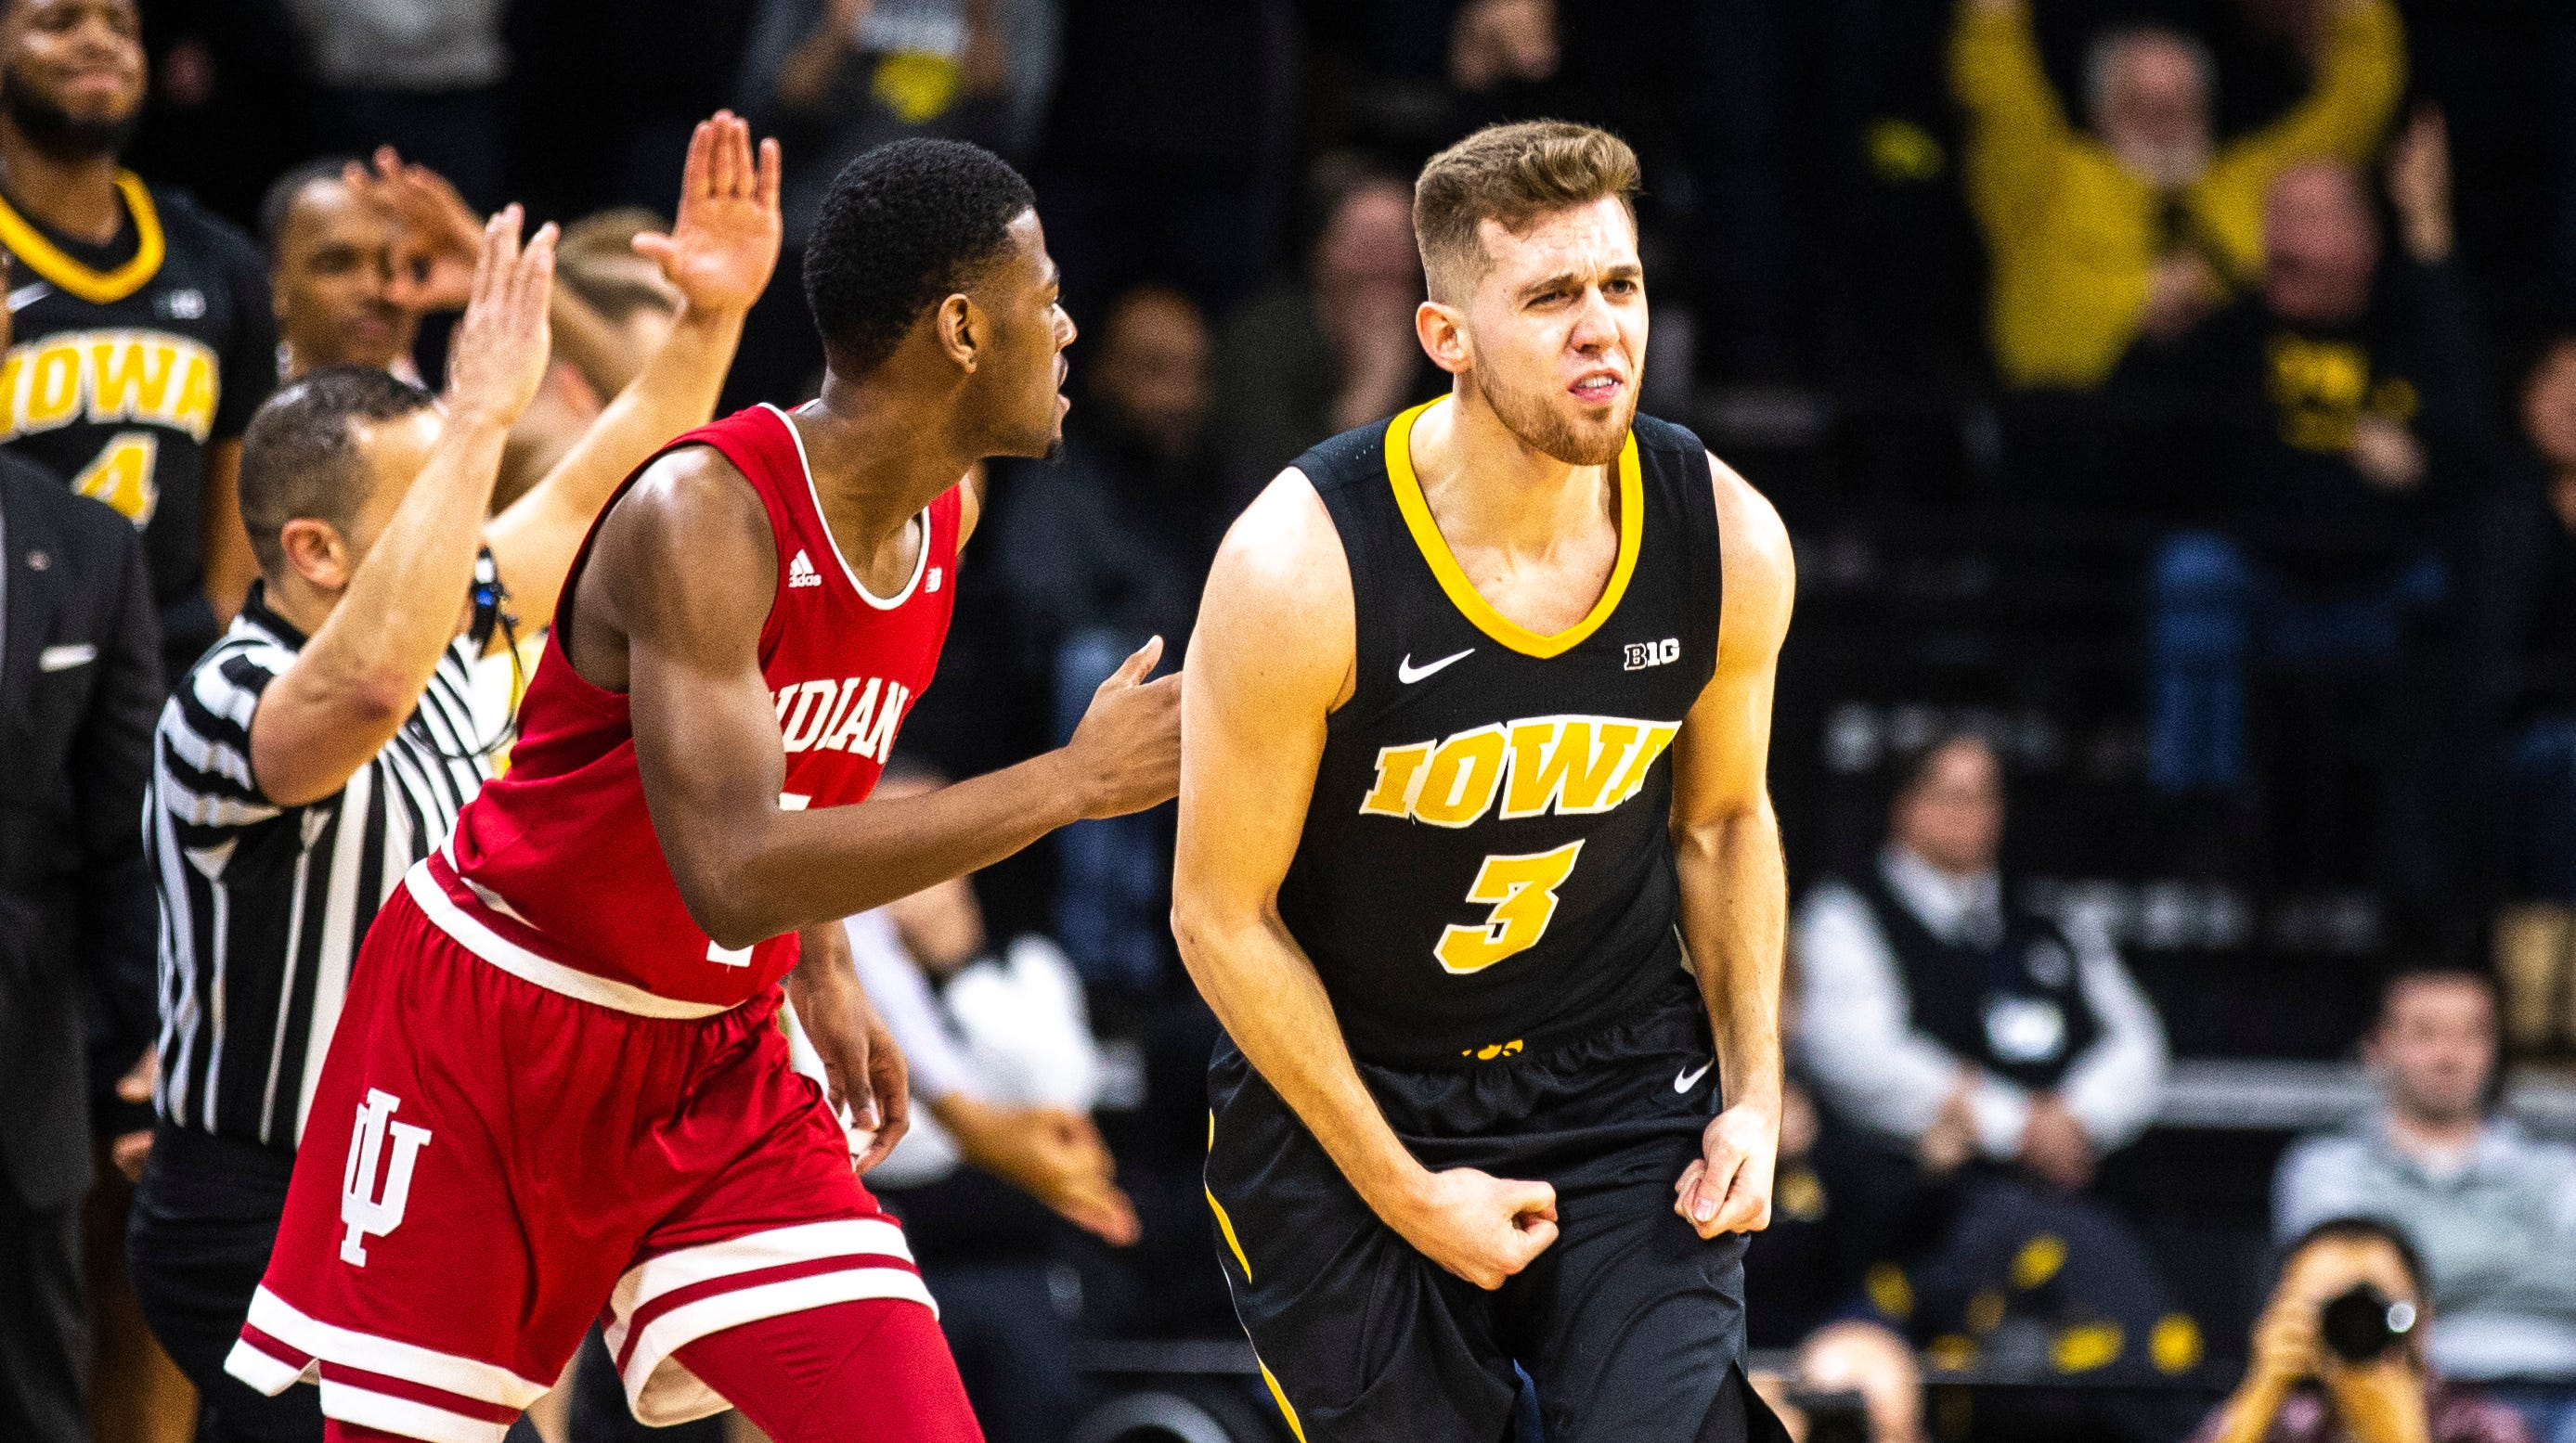 Hip injury leaves Jordan Bohannon's 2019-20 season in jeopardy